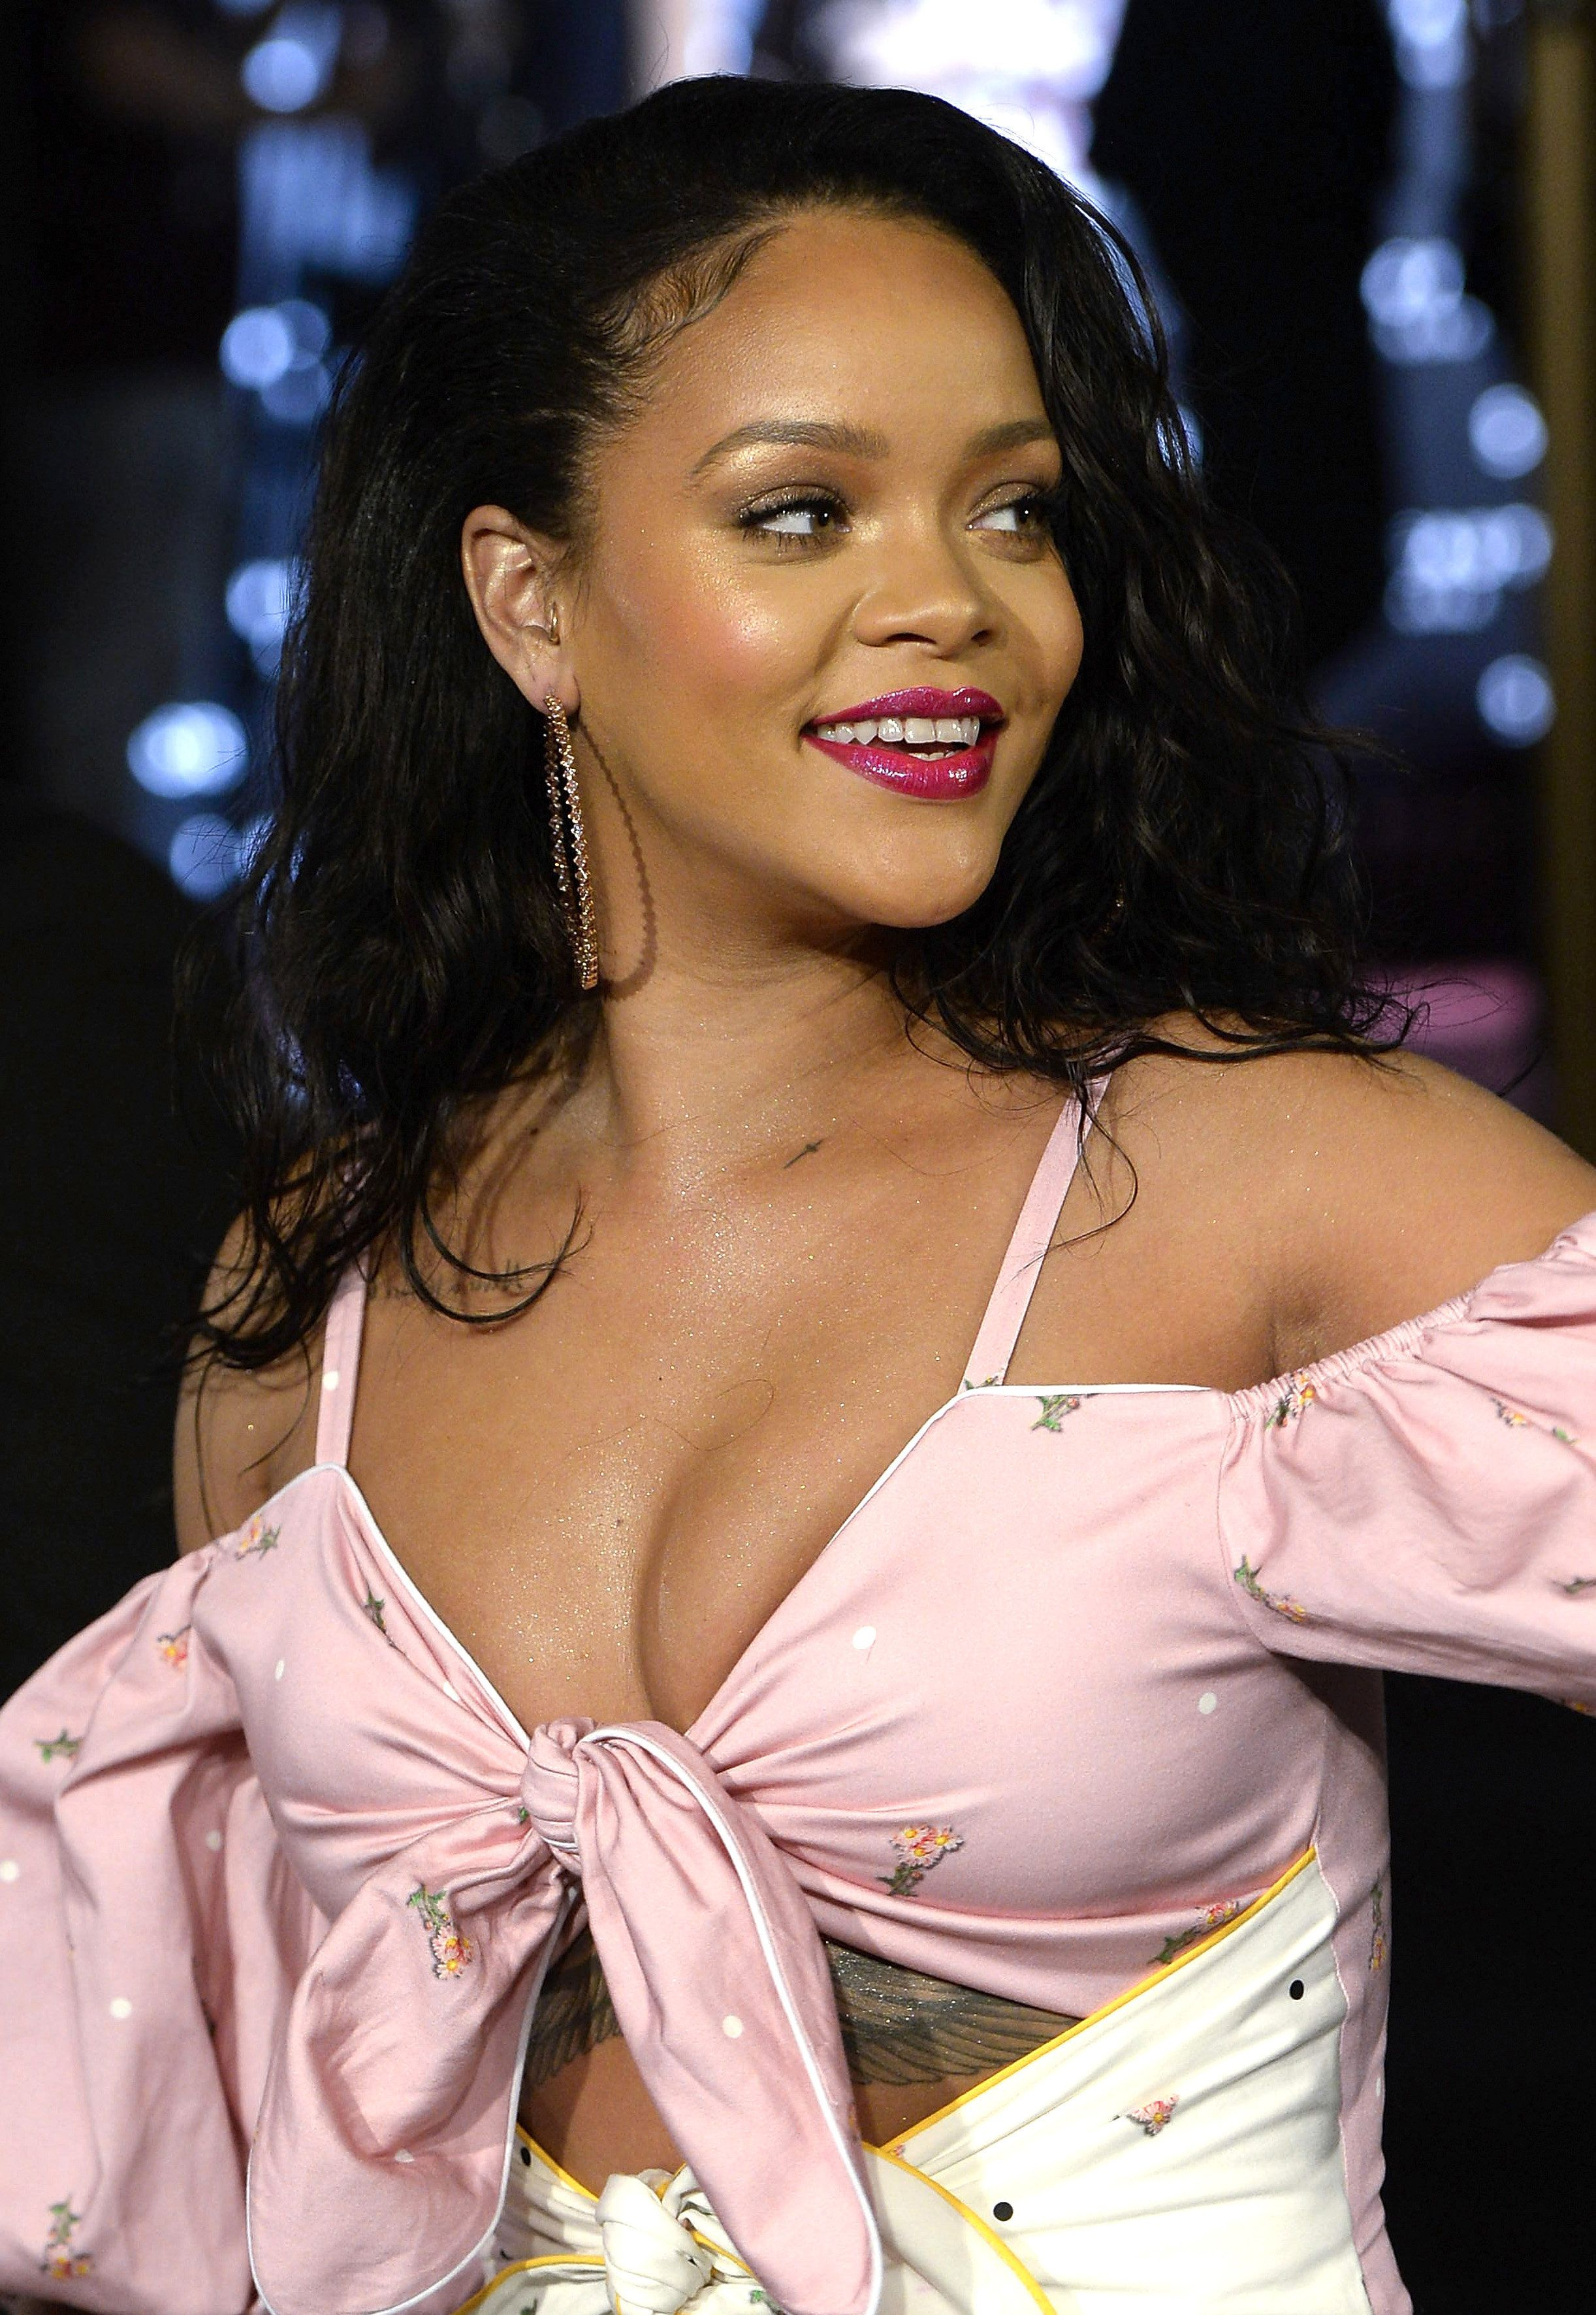 Like Lupita, we can always count on Rihanna to go bold with her beauty looks. This bright fuchsia lip -- complemented by some